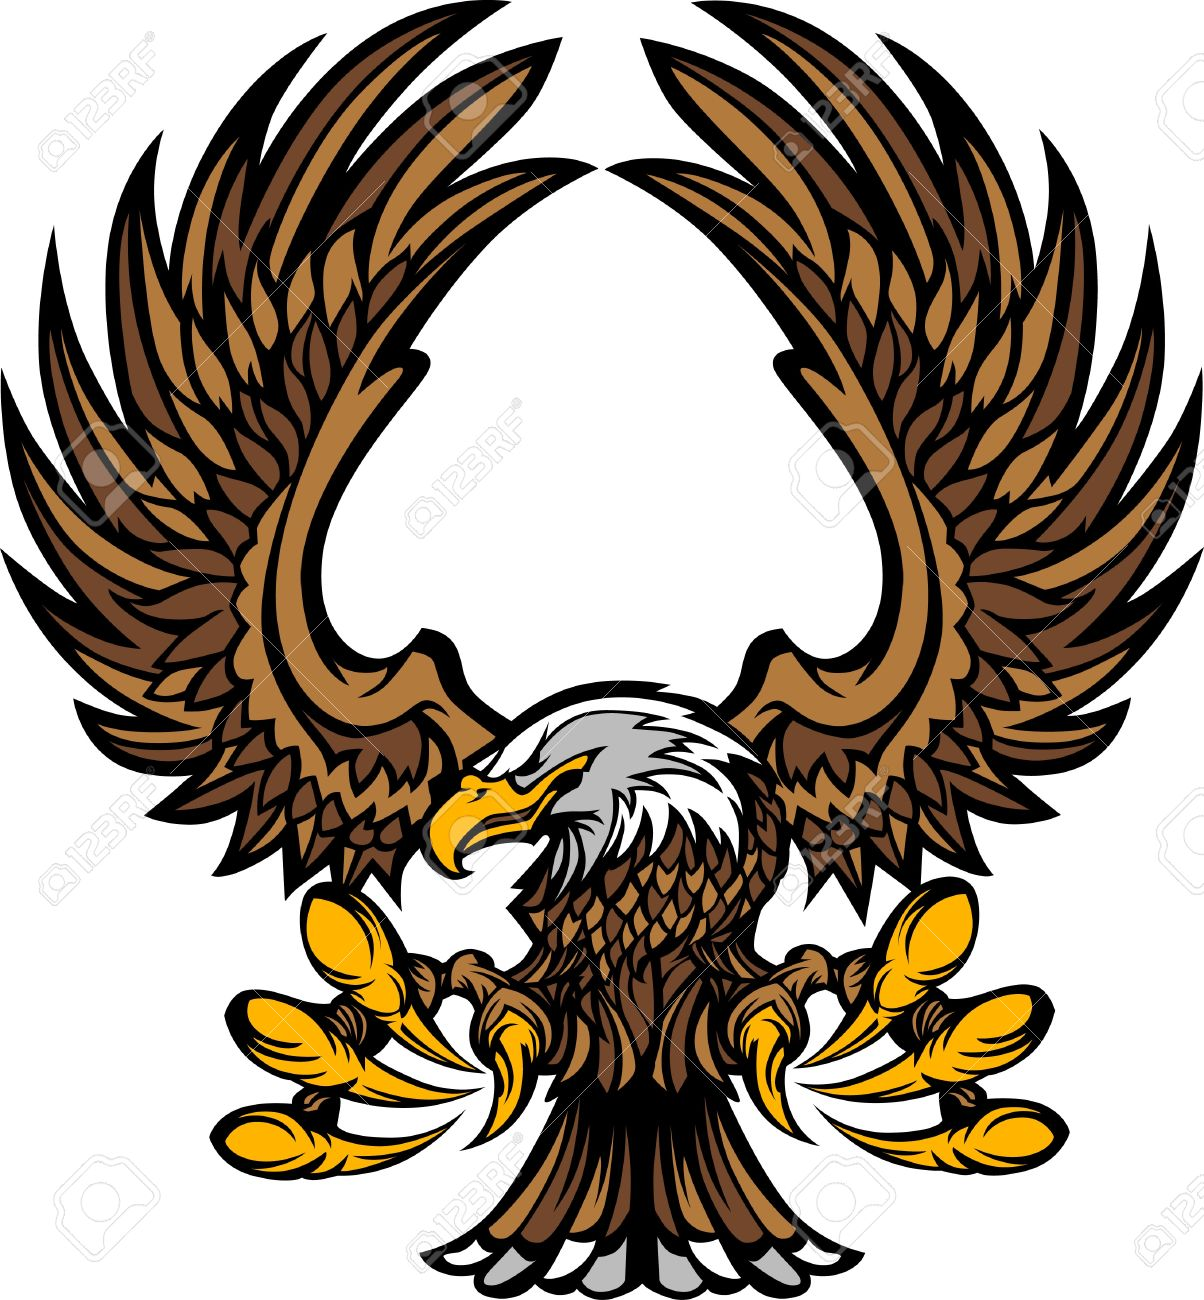 1204x1300 Eagle Wings And Claws Mascot Logo Royalty Free Cliparts, Vectors